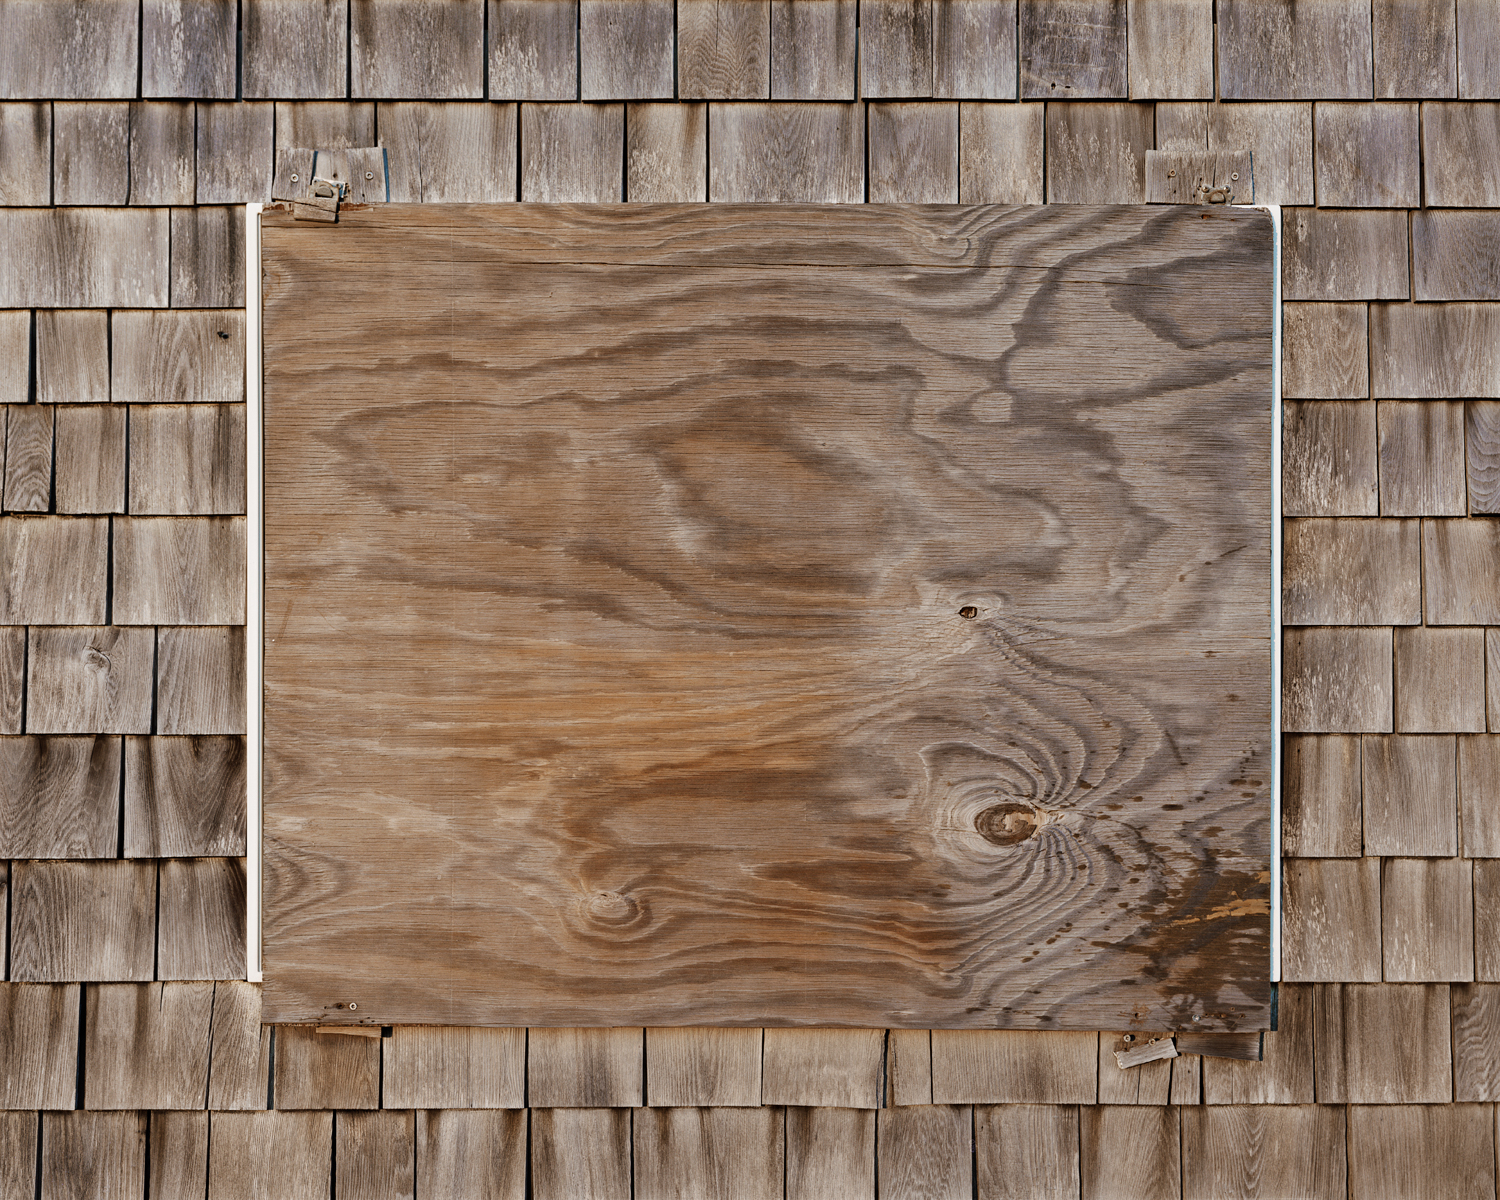 Boarded Up |  Nantucket  |  Michael Gaillard